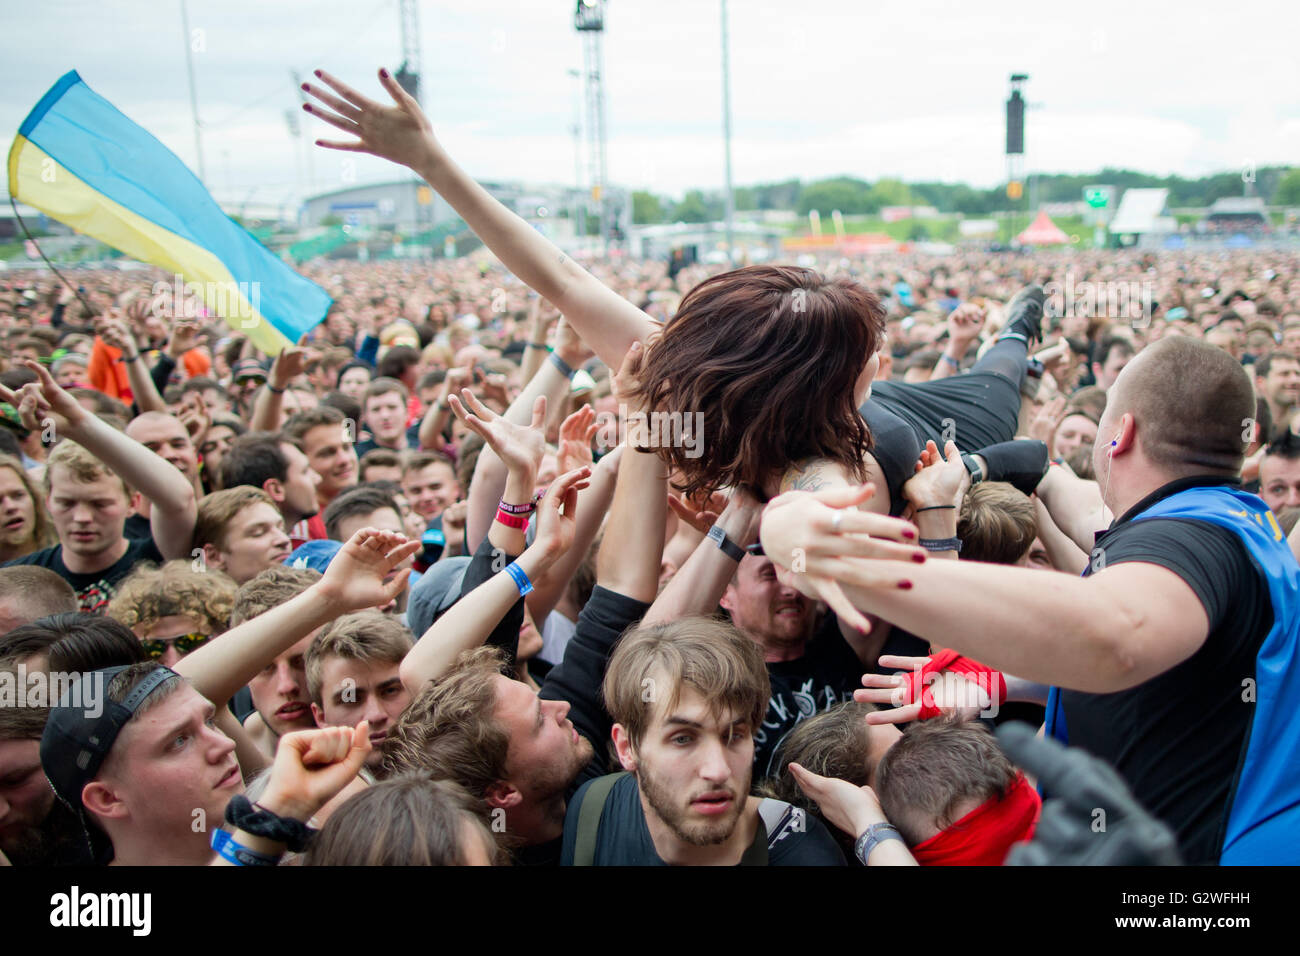 Nuremberg, Germany. 03rd June, 2016. A woman crowdsurfs during a concert at the music festival 'Rock im Park' - Stock Image